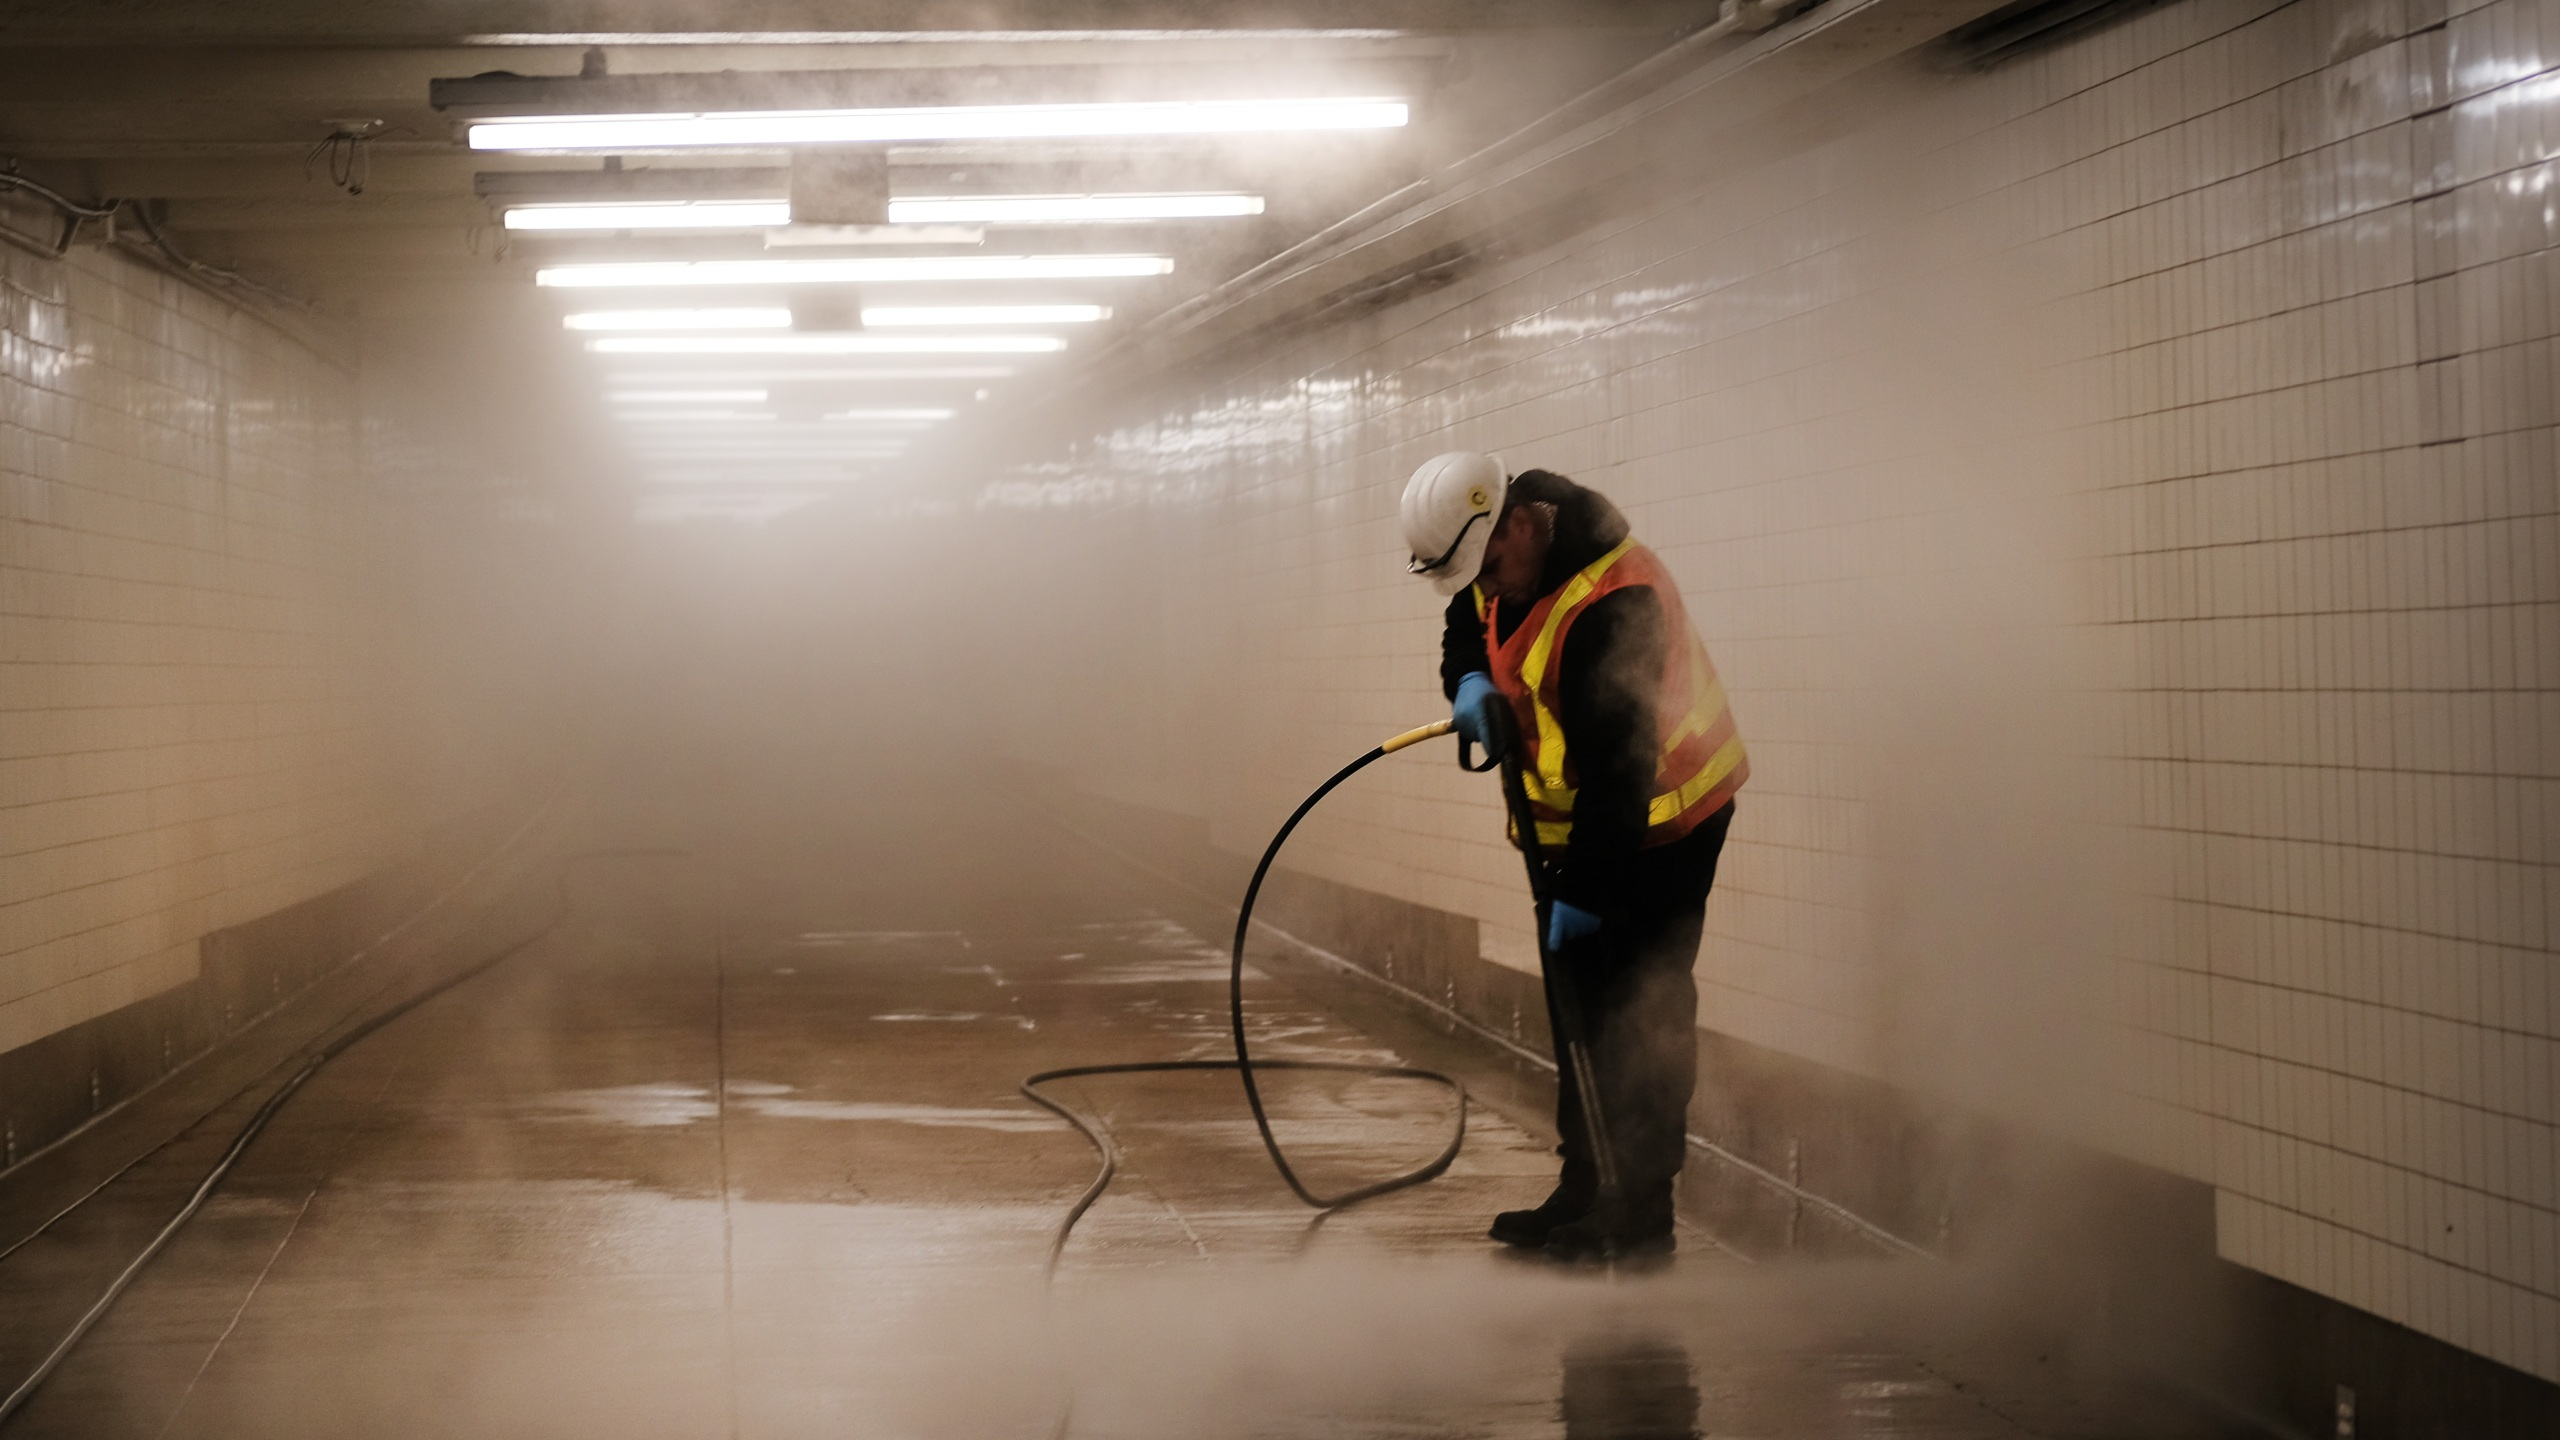 Workers clean a subway station in Brooklyn as New York City confronts the coronavirus outbreak on March 11, 2020. (Spencer Platt/Getty Images)